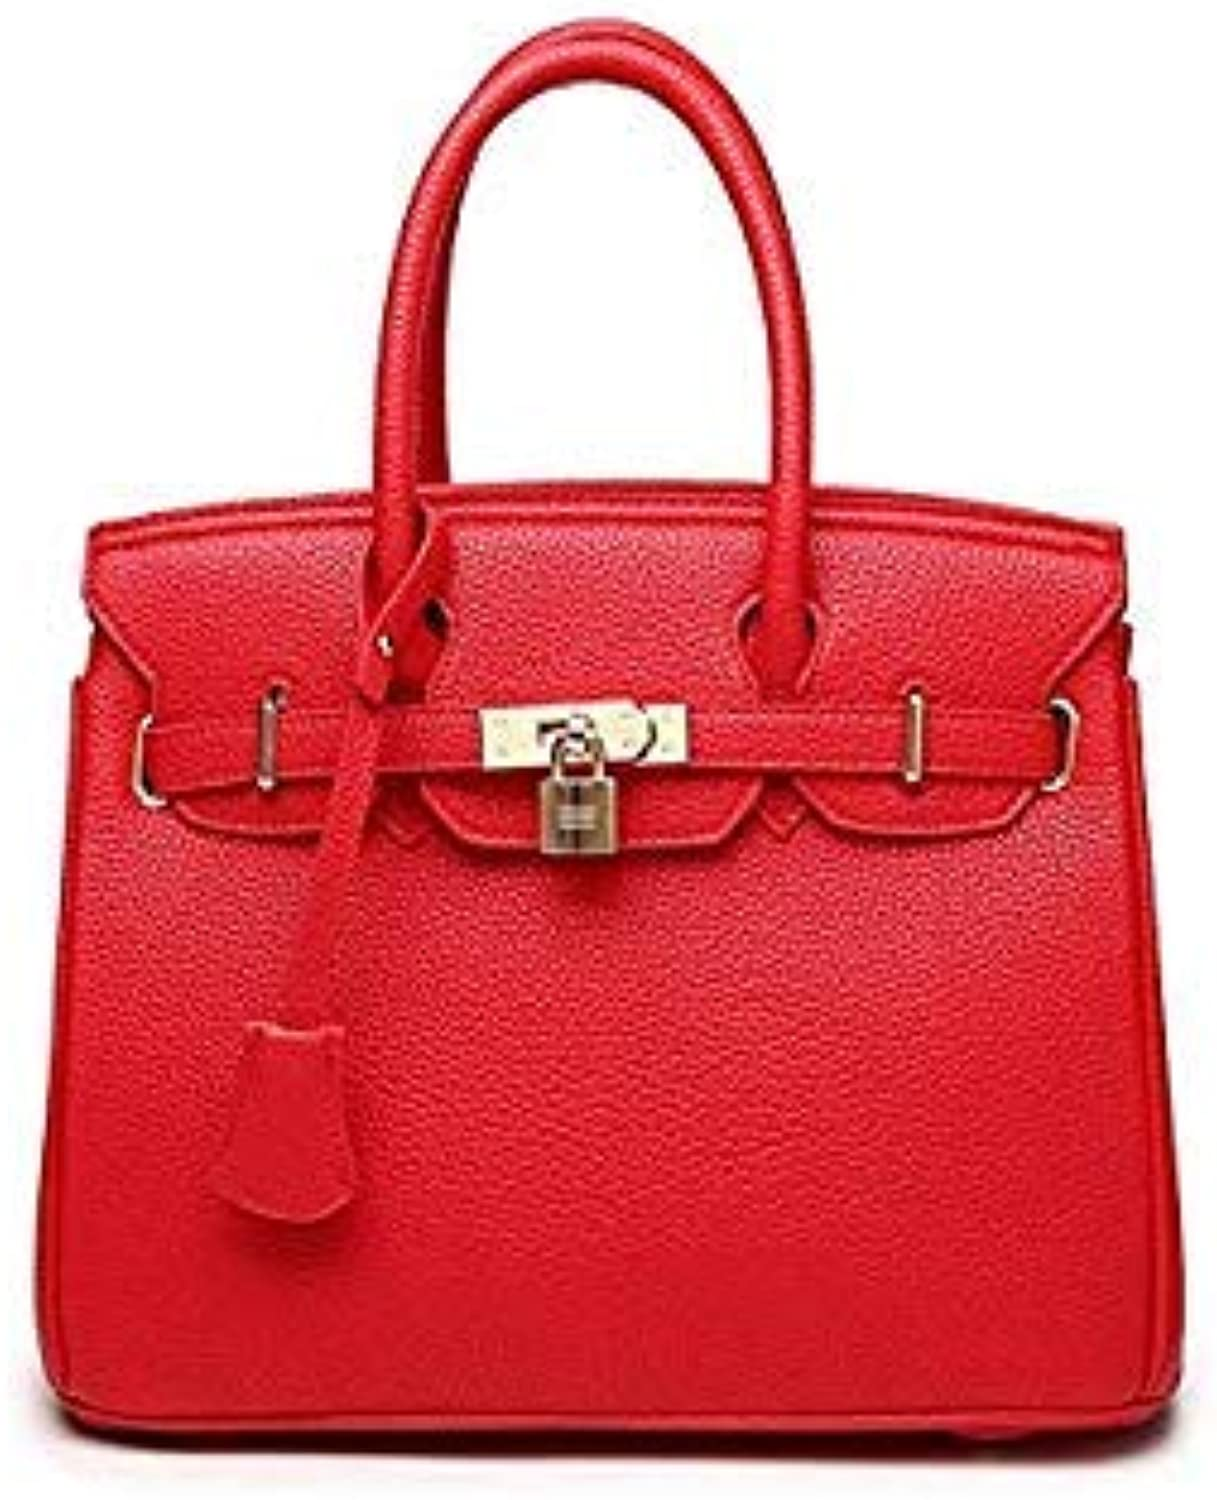 Bloomerang Lisse Women's Tote Leather Clutch Bag Small Ladies Handbags Brand Women Messenger Bags Sac A Main Femme color Red